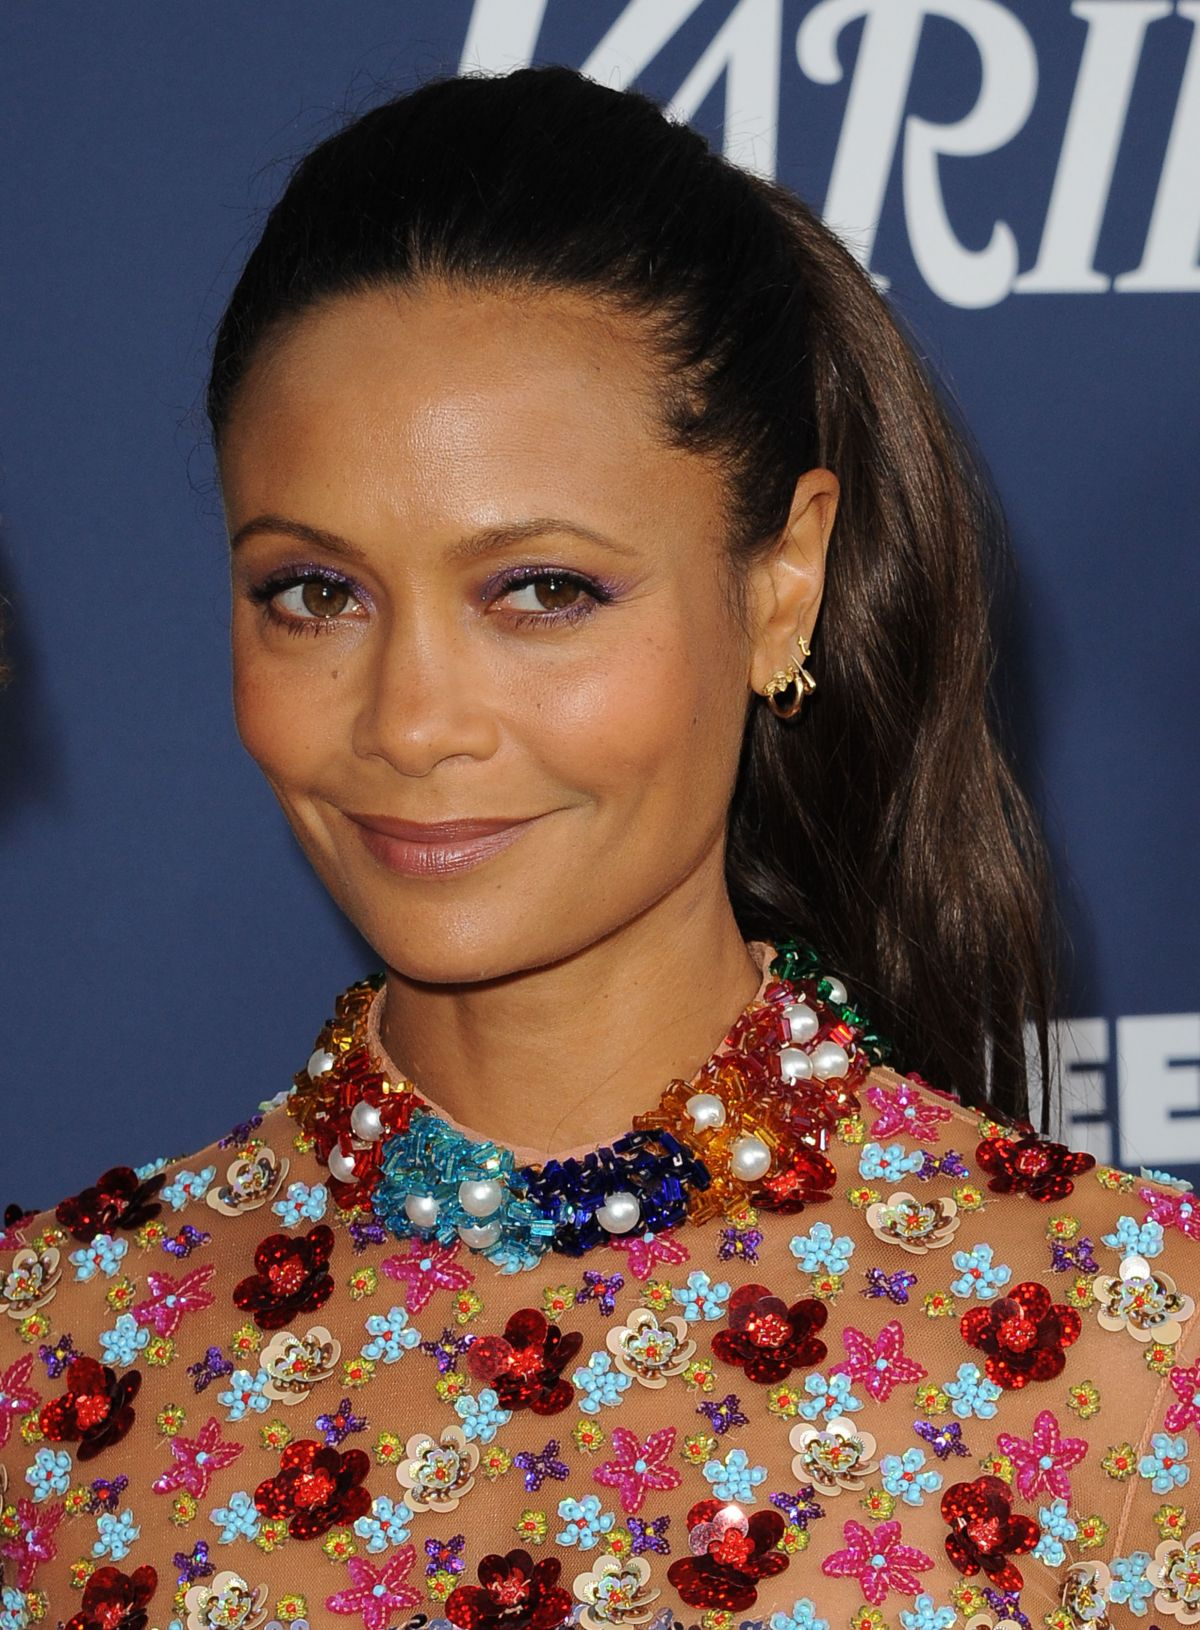 THANDIE NEWTON at 23rd Annual Screen Actors Guild Awards